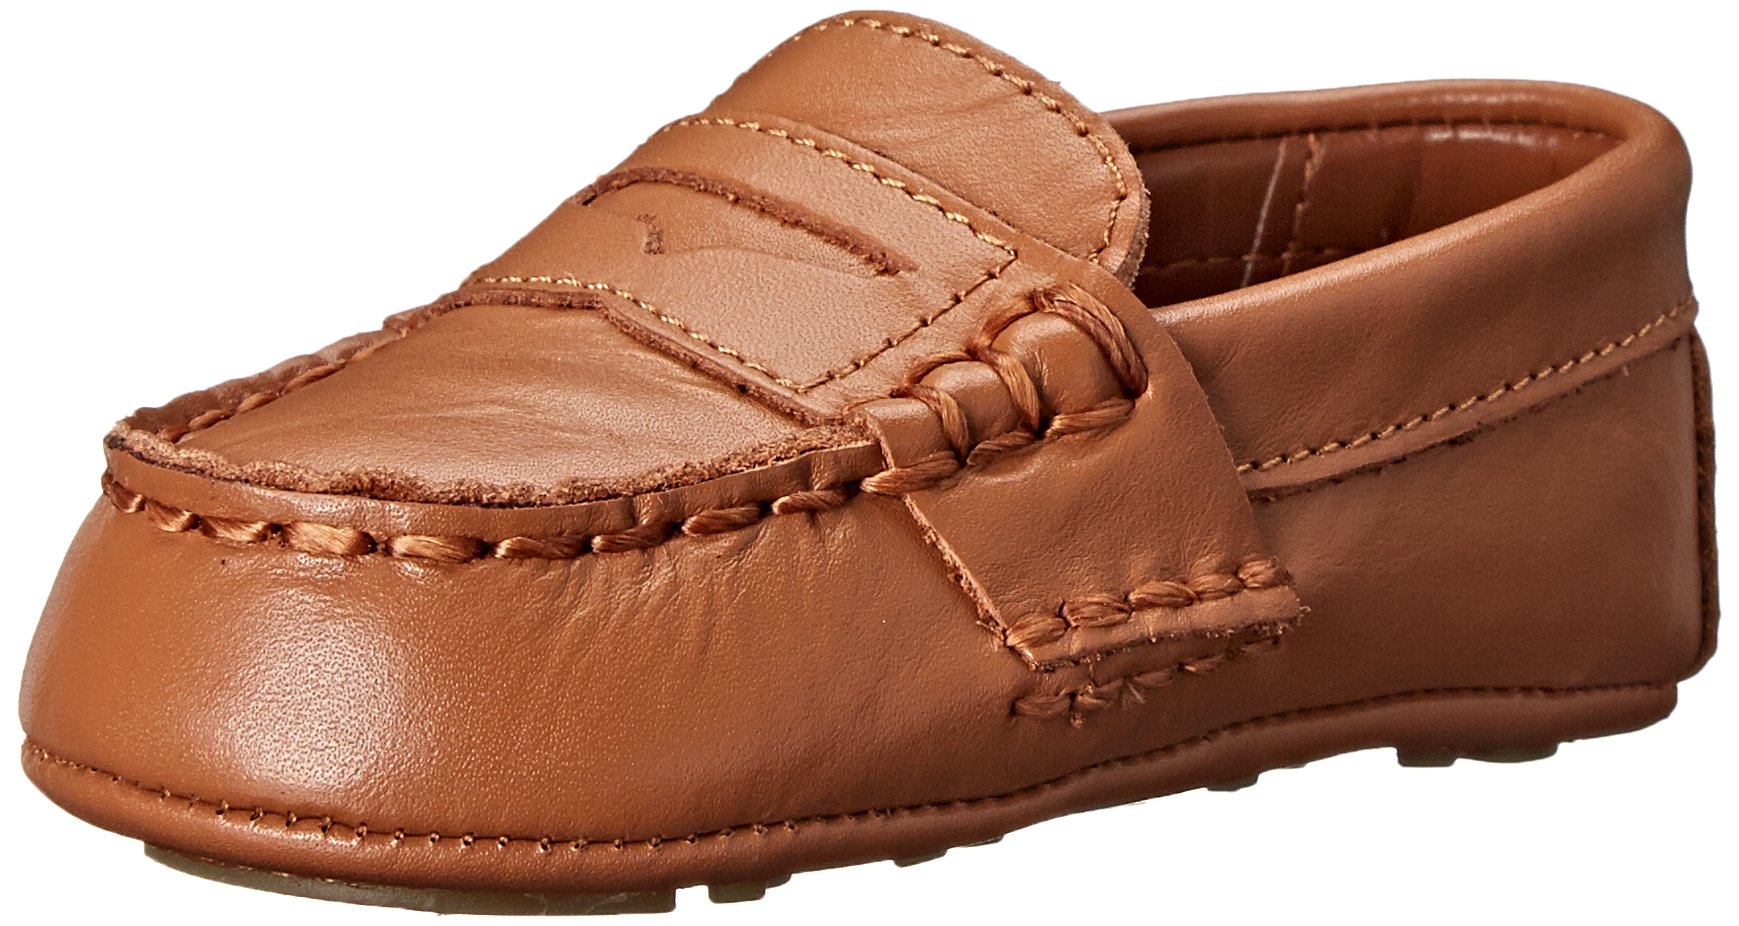 Ralph Lauren Layette Telly Loafer (Infant/Infant), Tan, 2 M US Infant by Polo Ralph Lauren